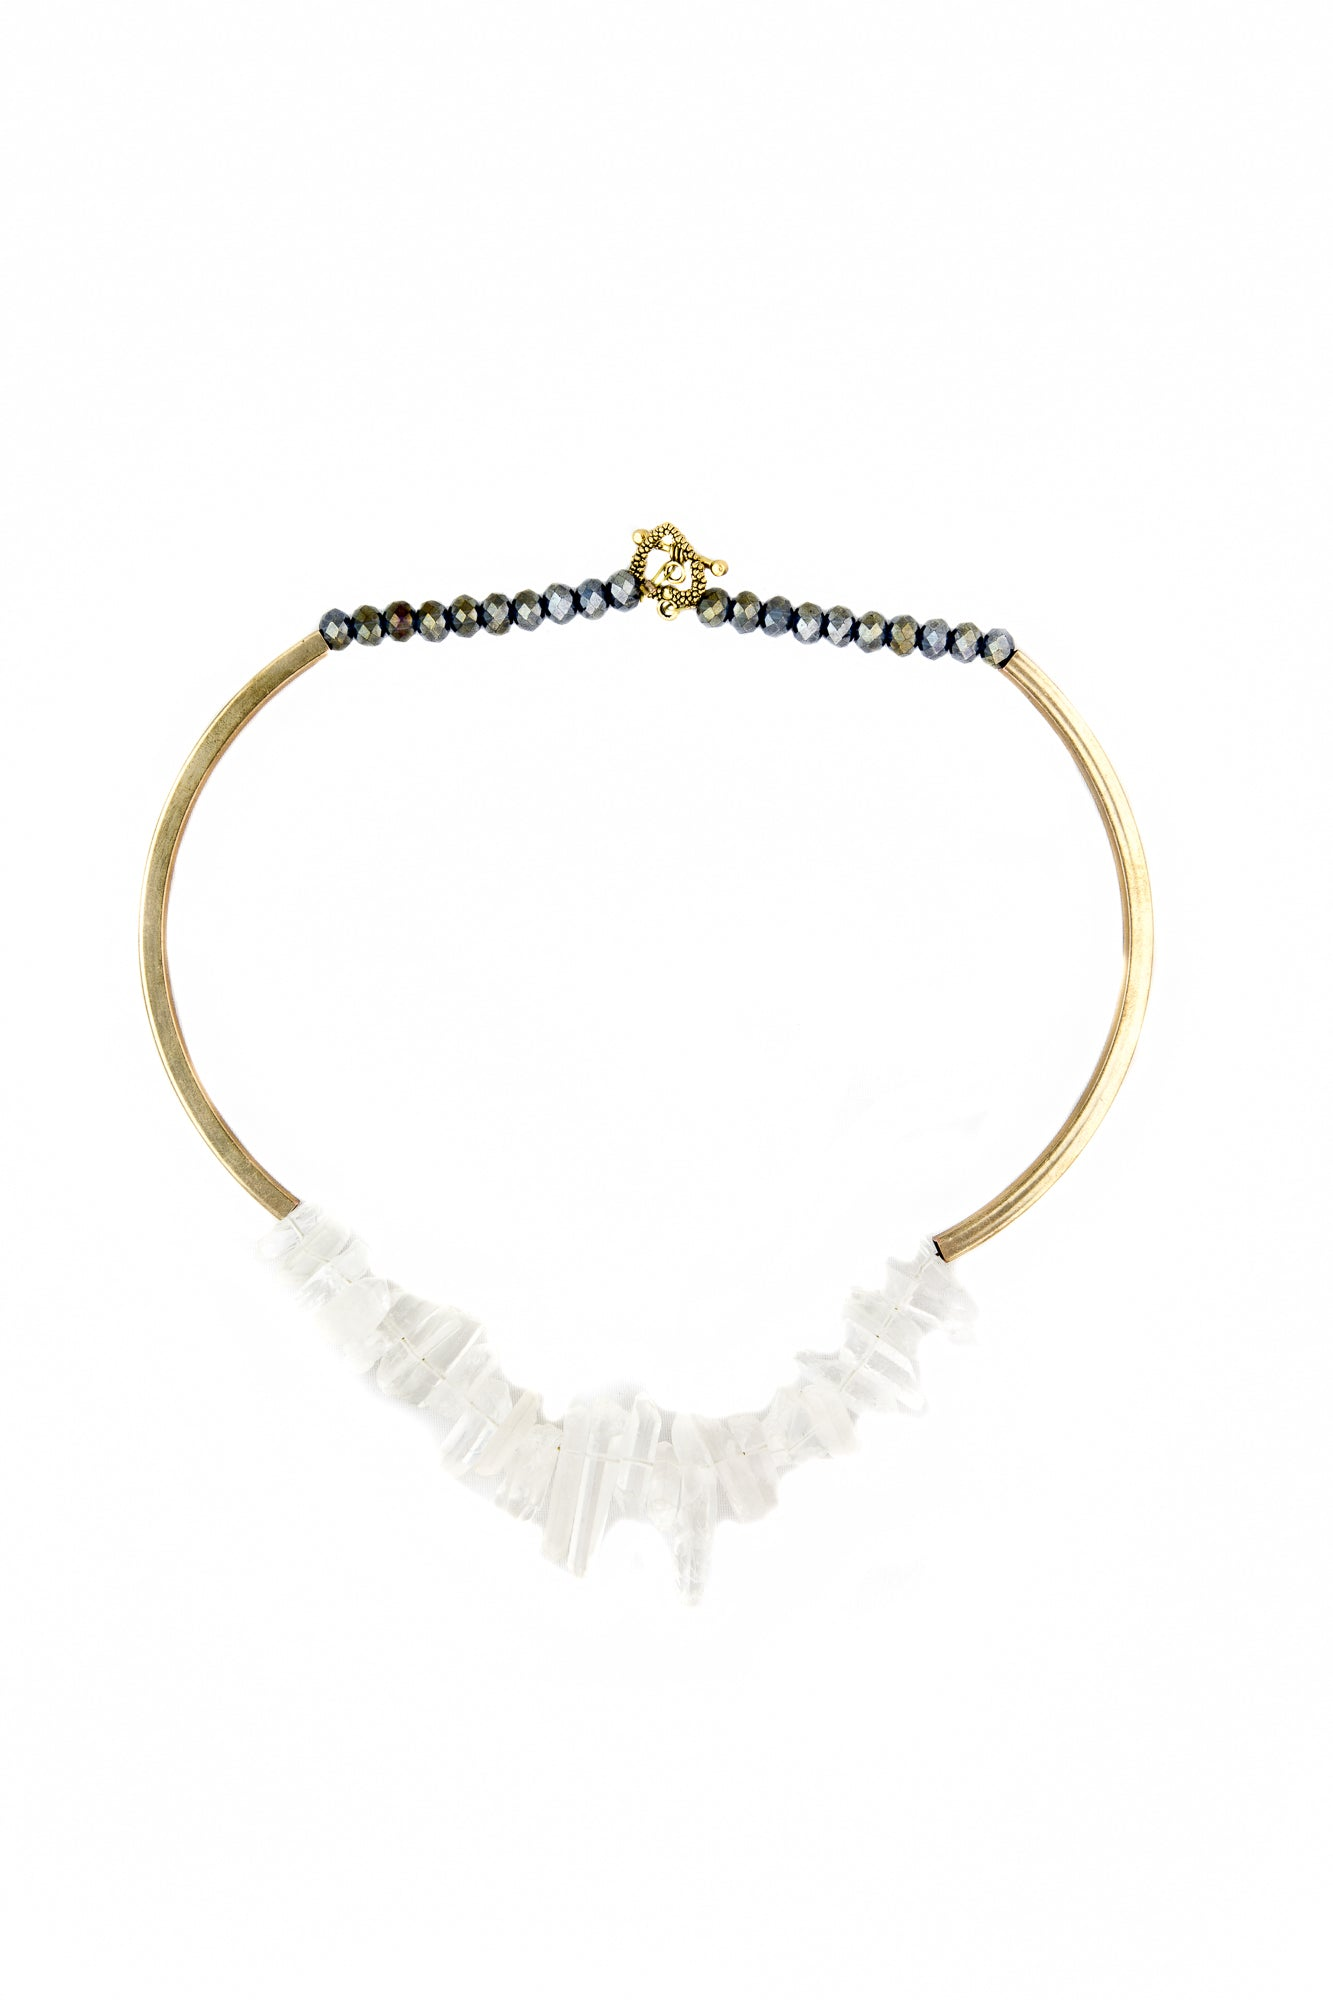 Quartz spikes necklace